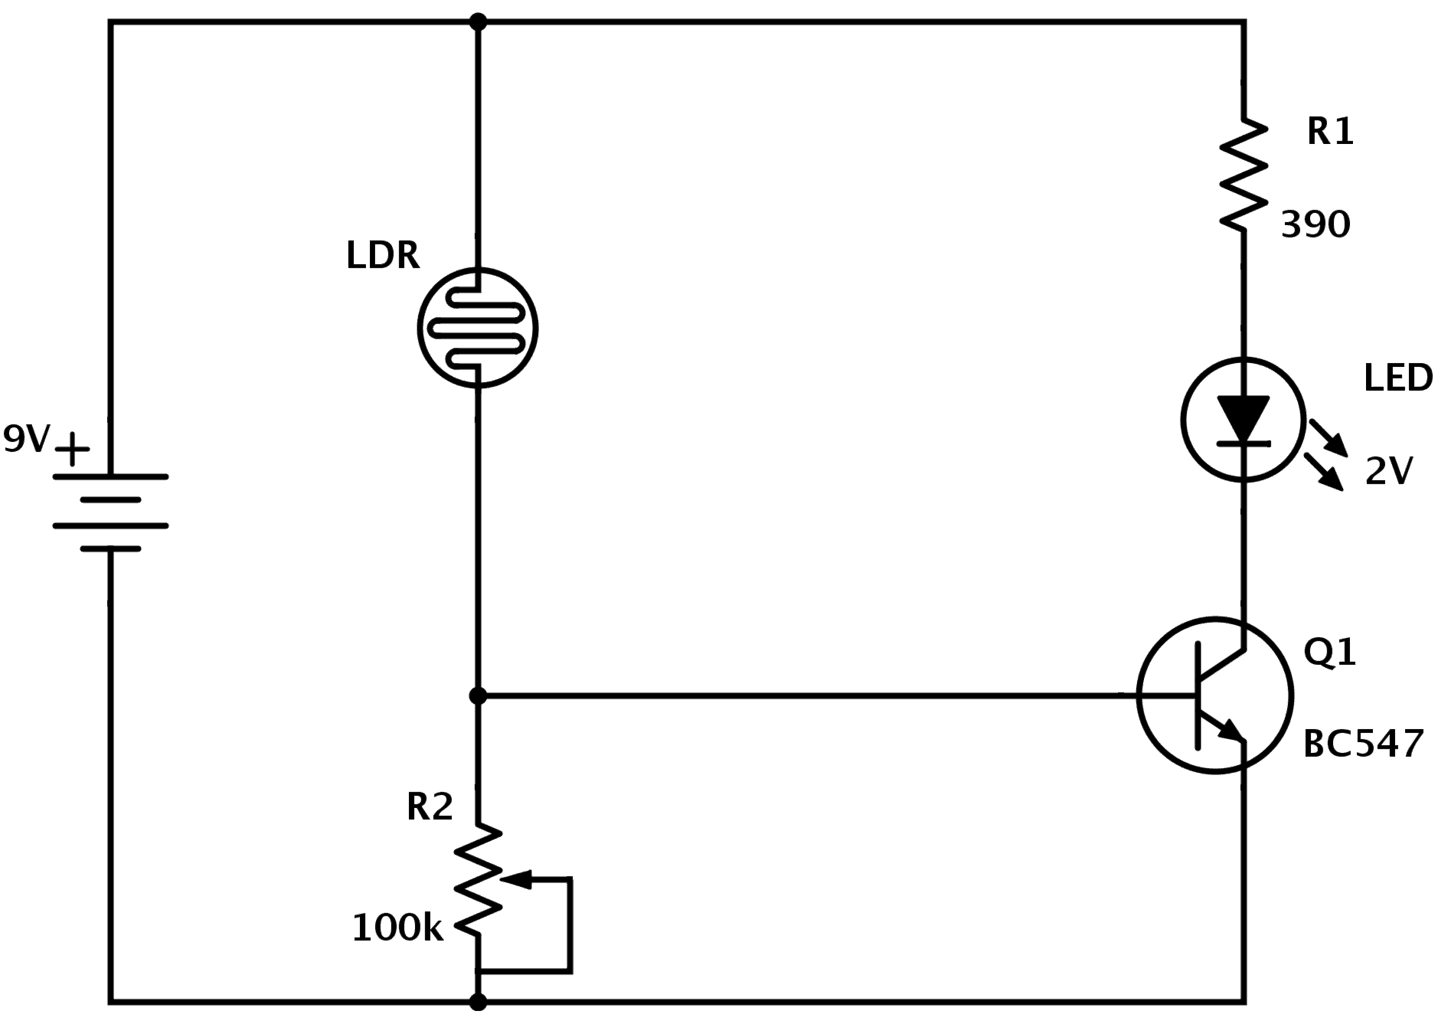 Ldr Circuit Diagram Build Electronic Circuits How To Wire A Light Switch Wiring Besides 3 Speed Fan Motor